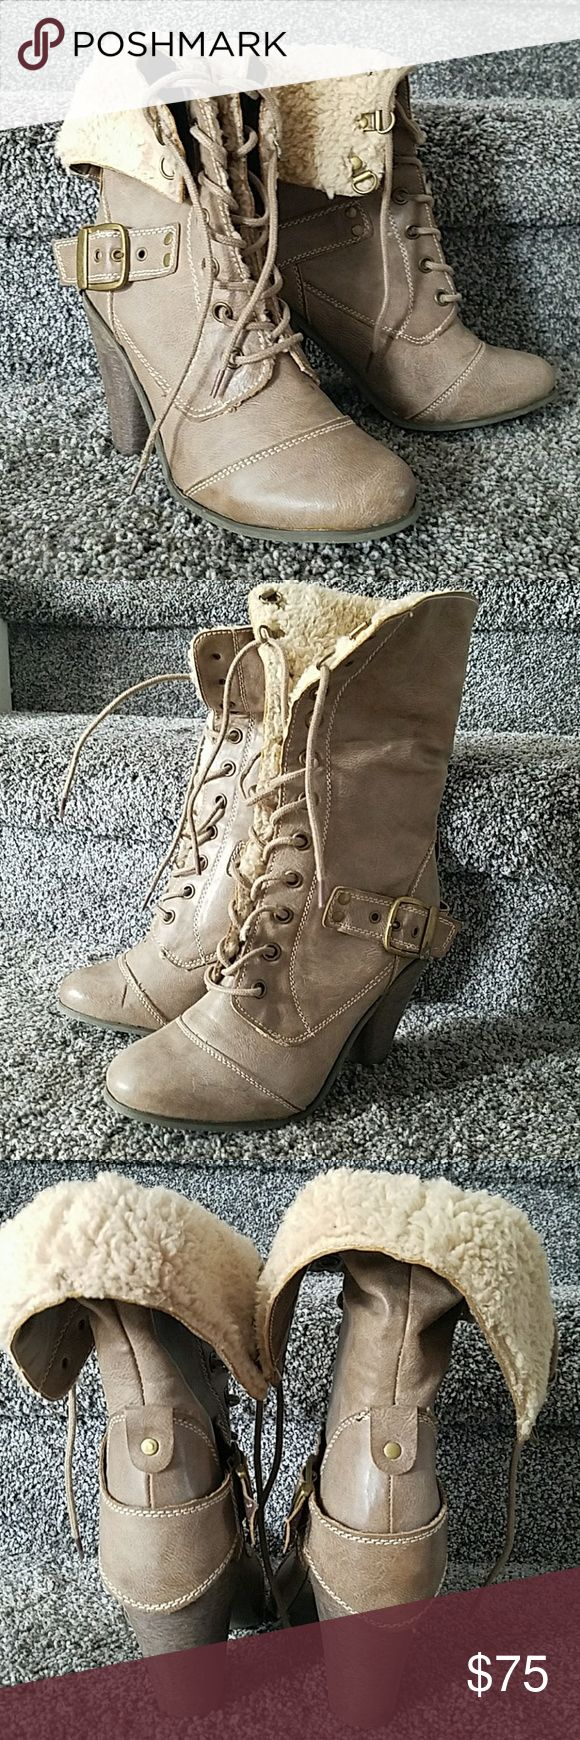 Nine West Winter Heal Boots Tan with Faux fur inner ankle. Size 6M. Worn one season. Stored since. Good shape Nine West Shoes Heeled Boots